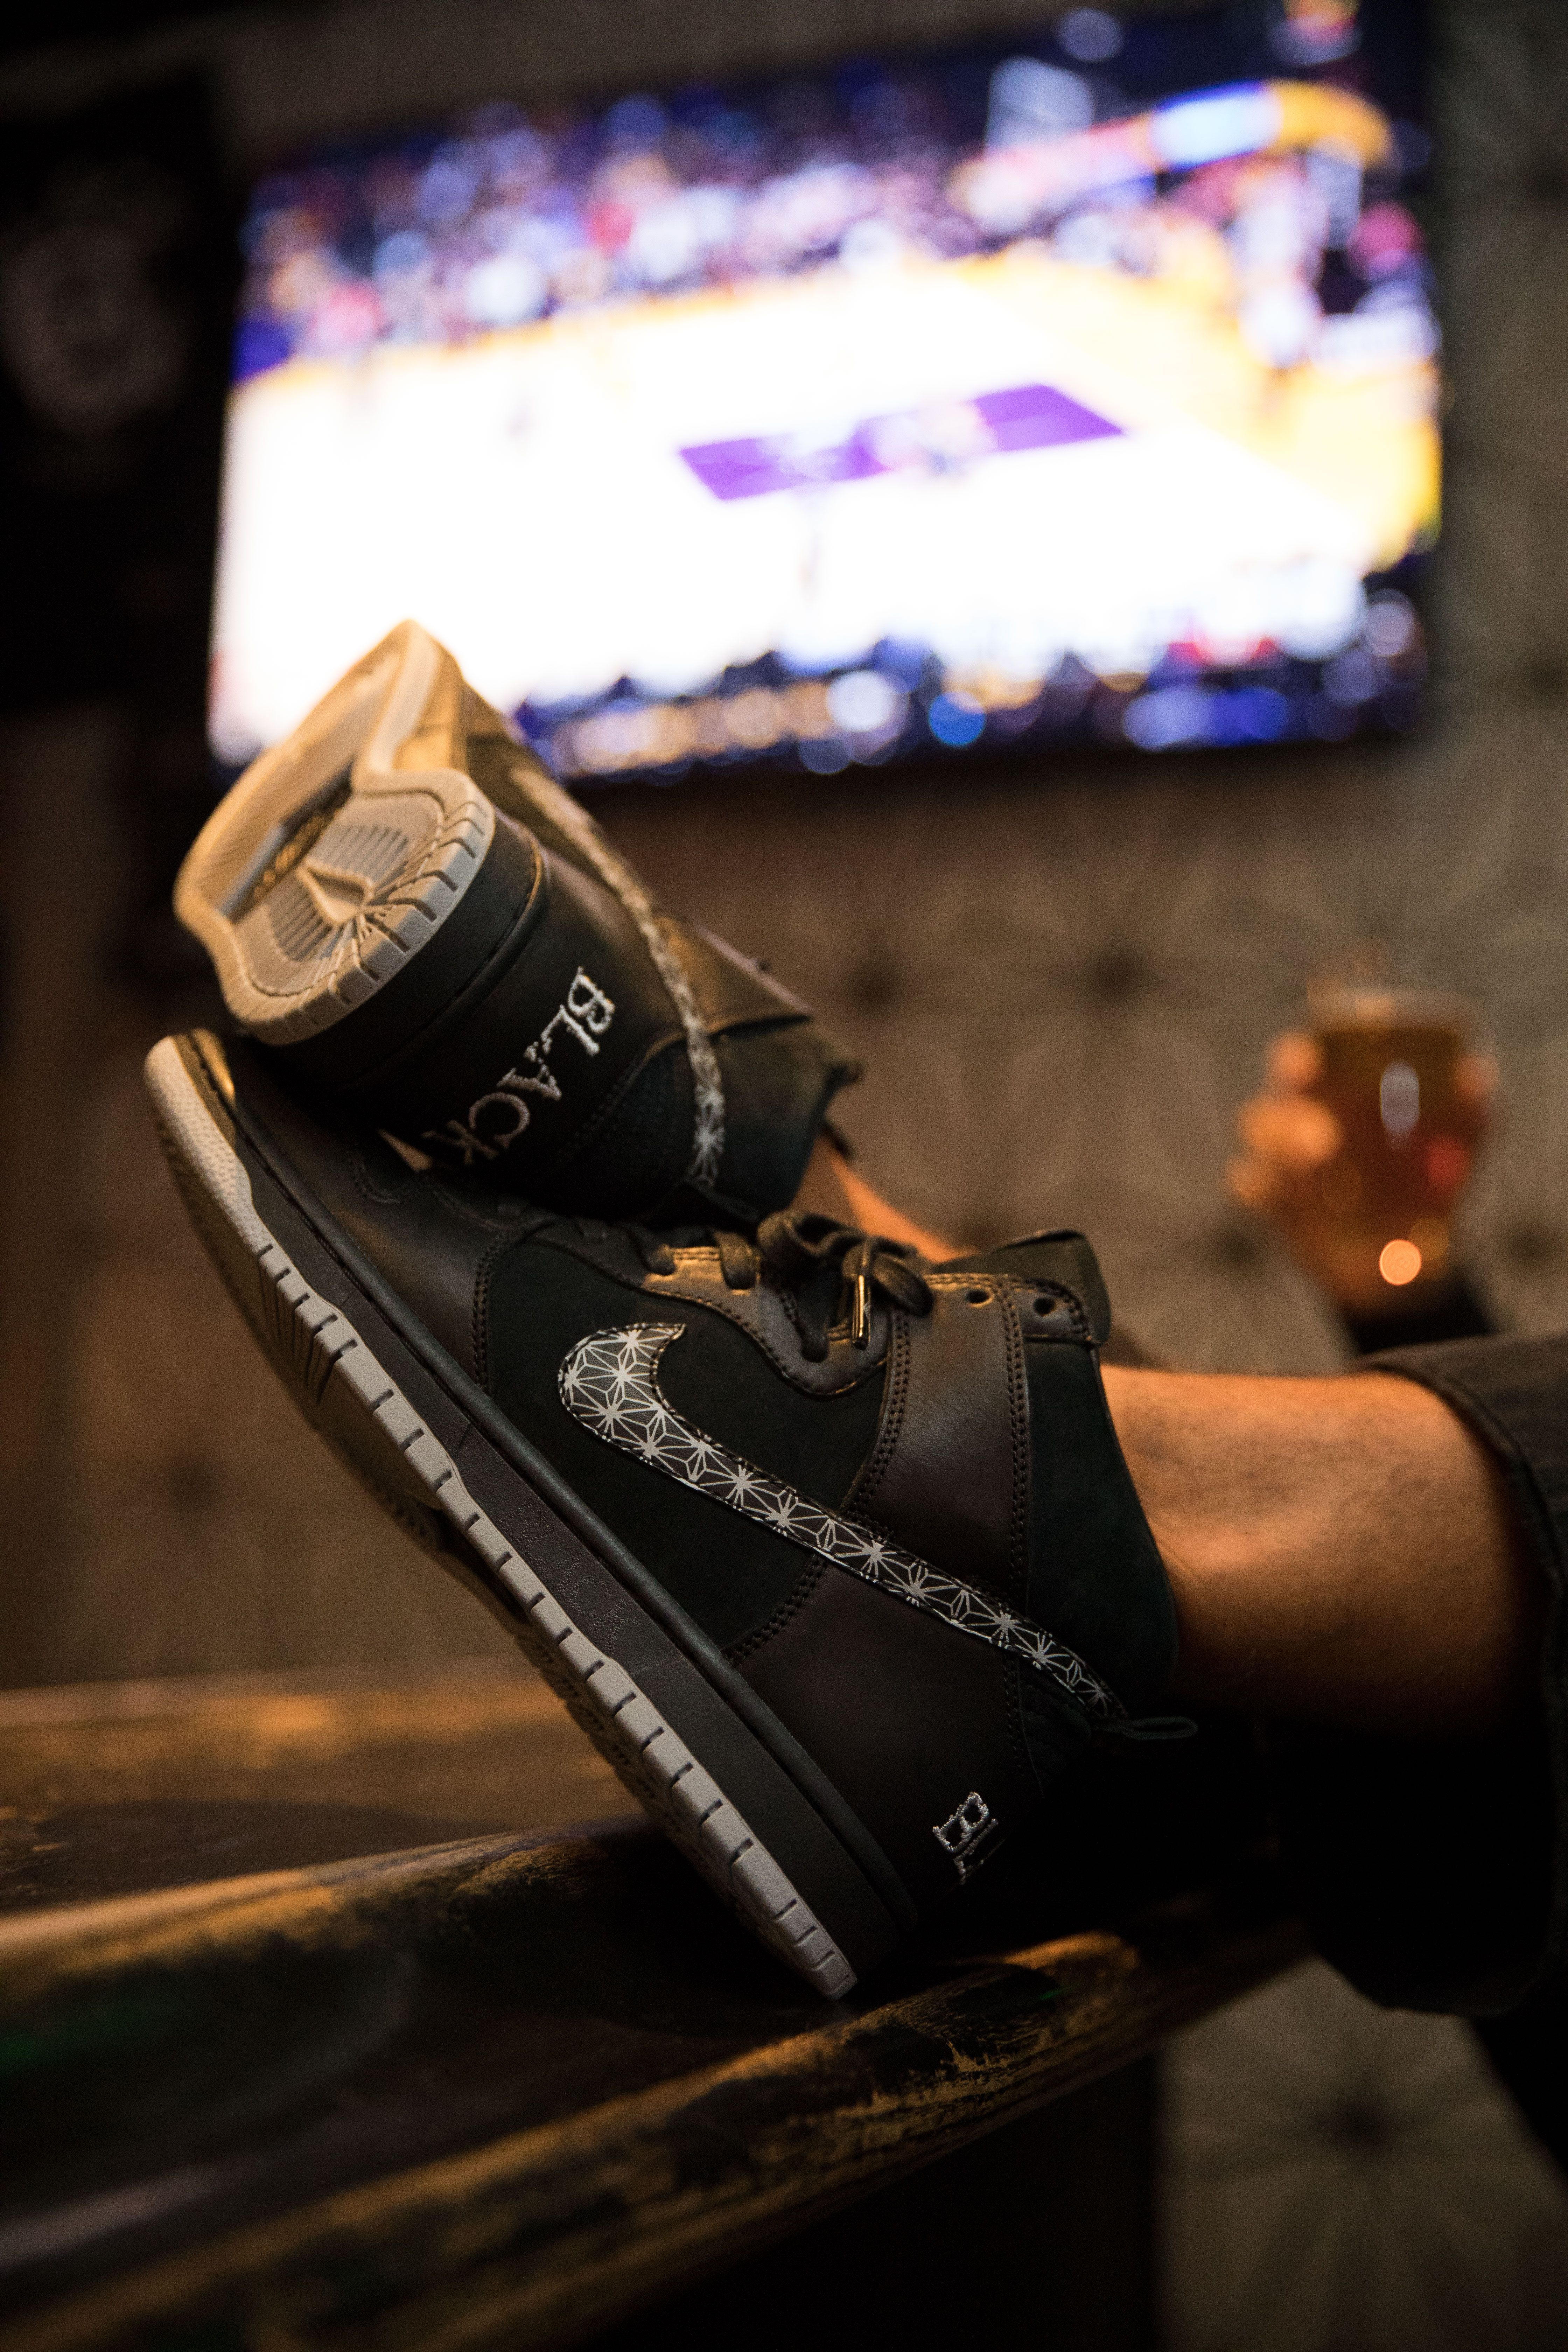 8f7de25a7b1974 Nike SB x Black Bar Dunk ◼️Exclusively built for skateboarding - the new Nike  SB x Black Bar Dunk High QS◼ ⠀ ⠀  SK8DLX ⠀  skatedeluxe